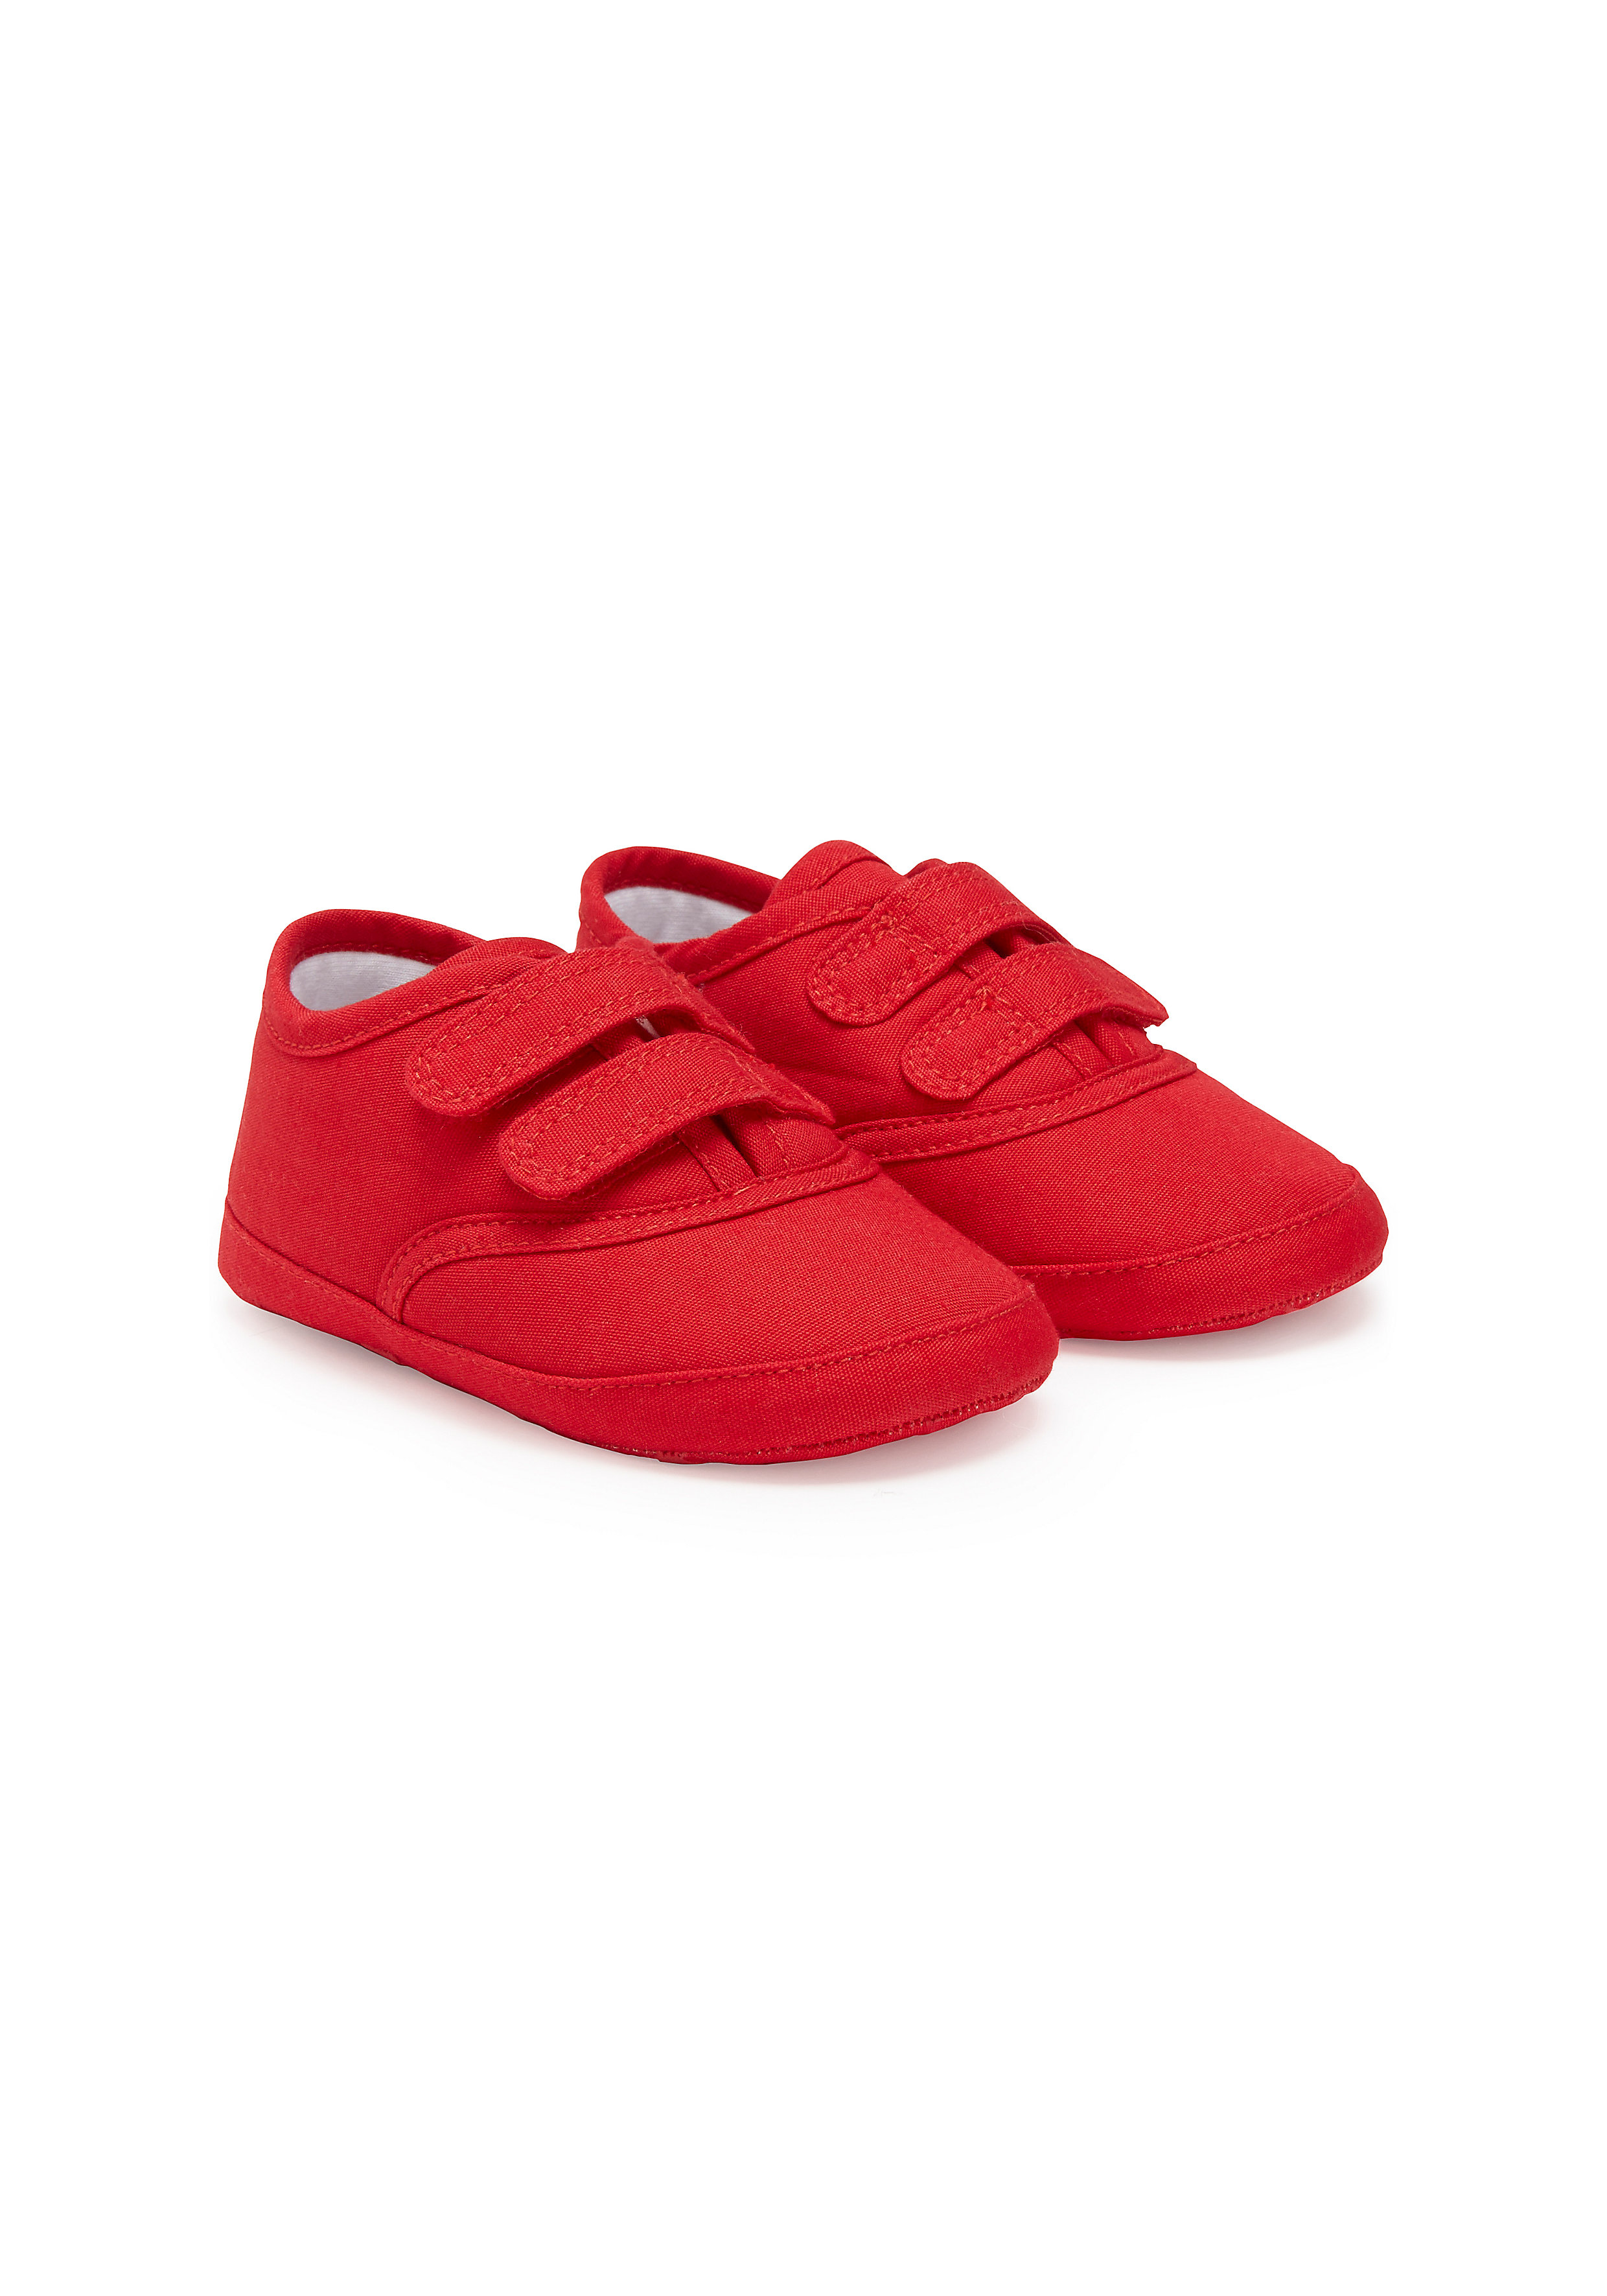 Mothercare | Boys Pram Shoes - Red